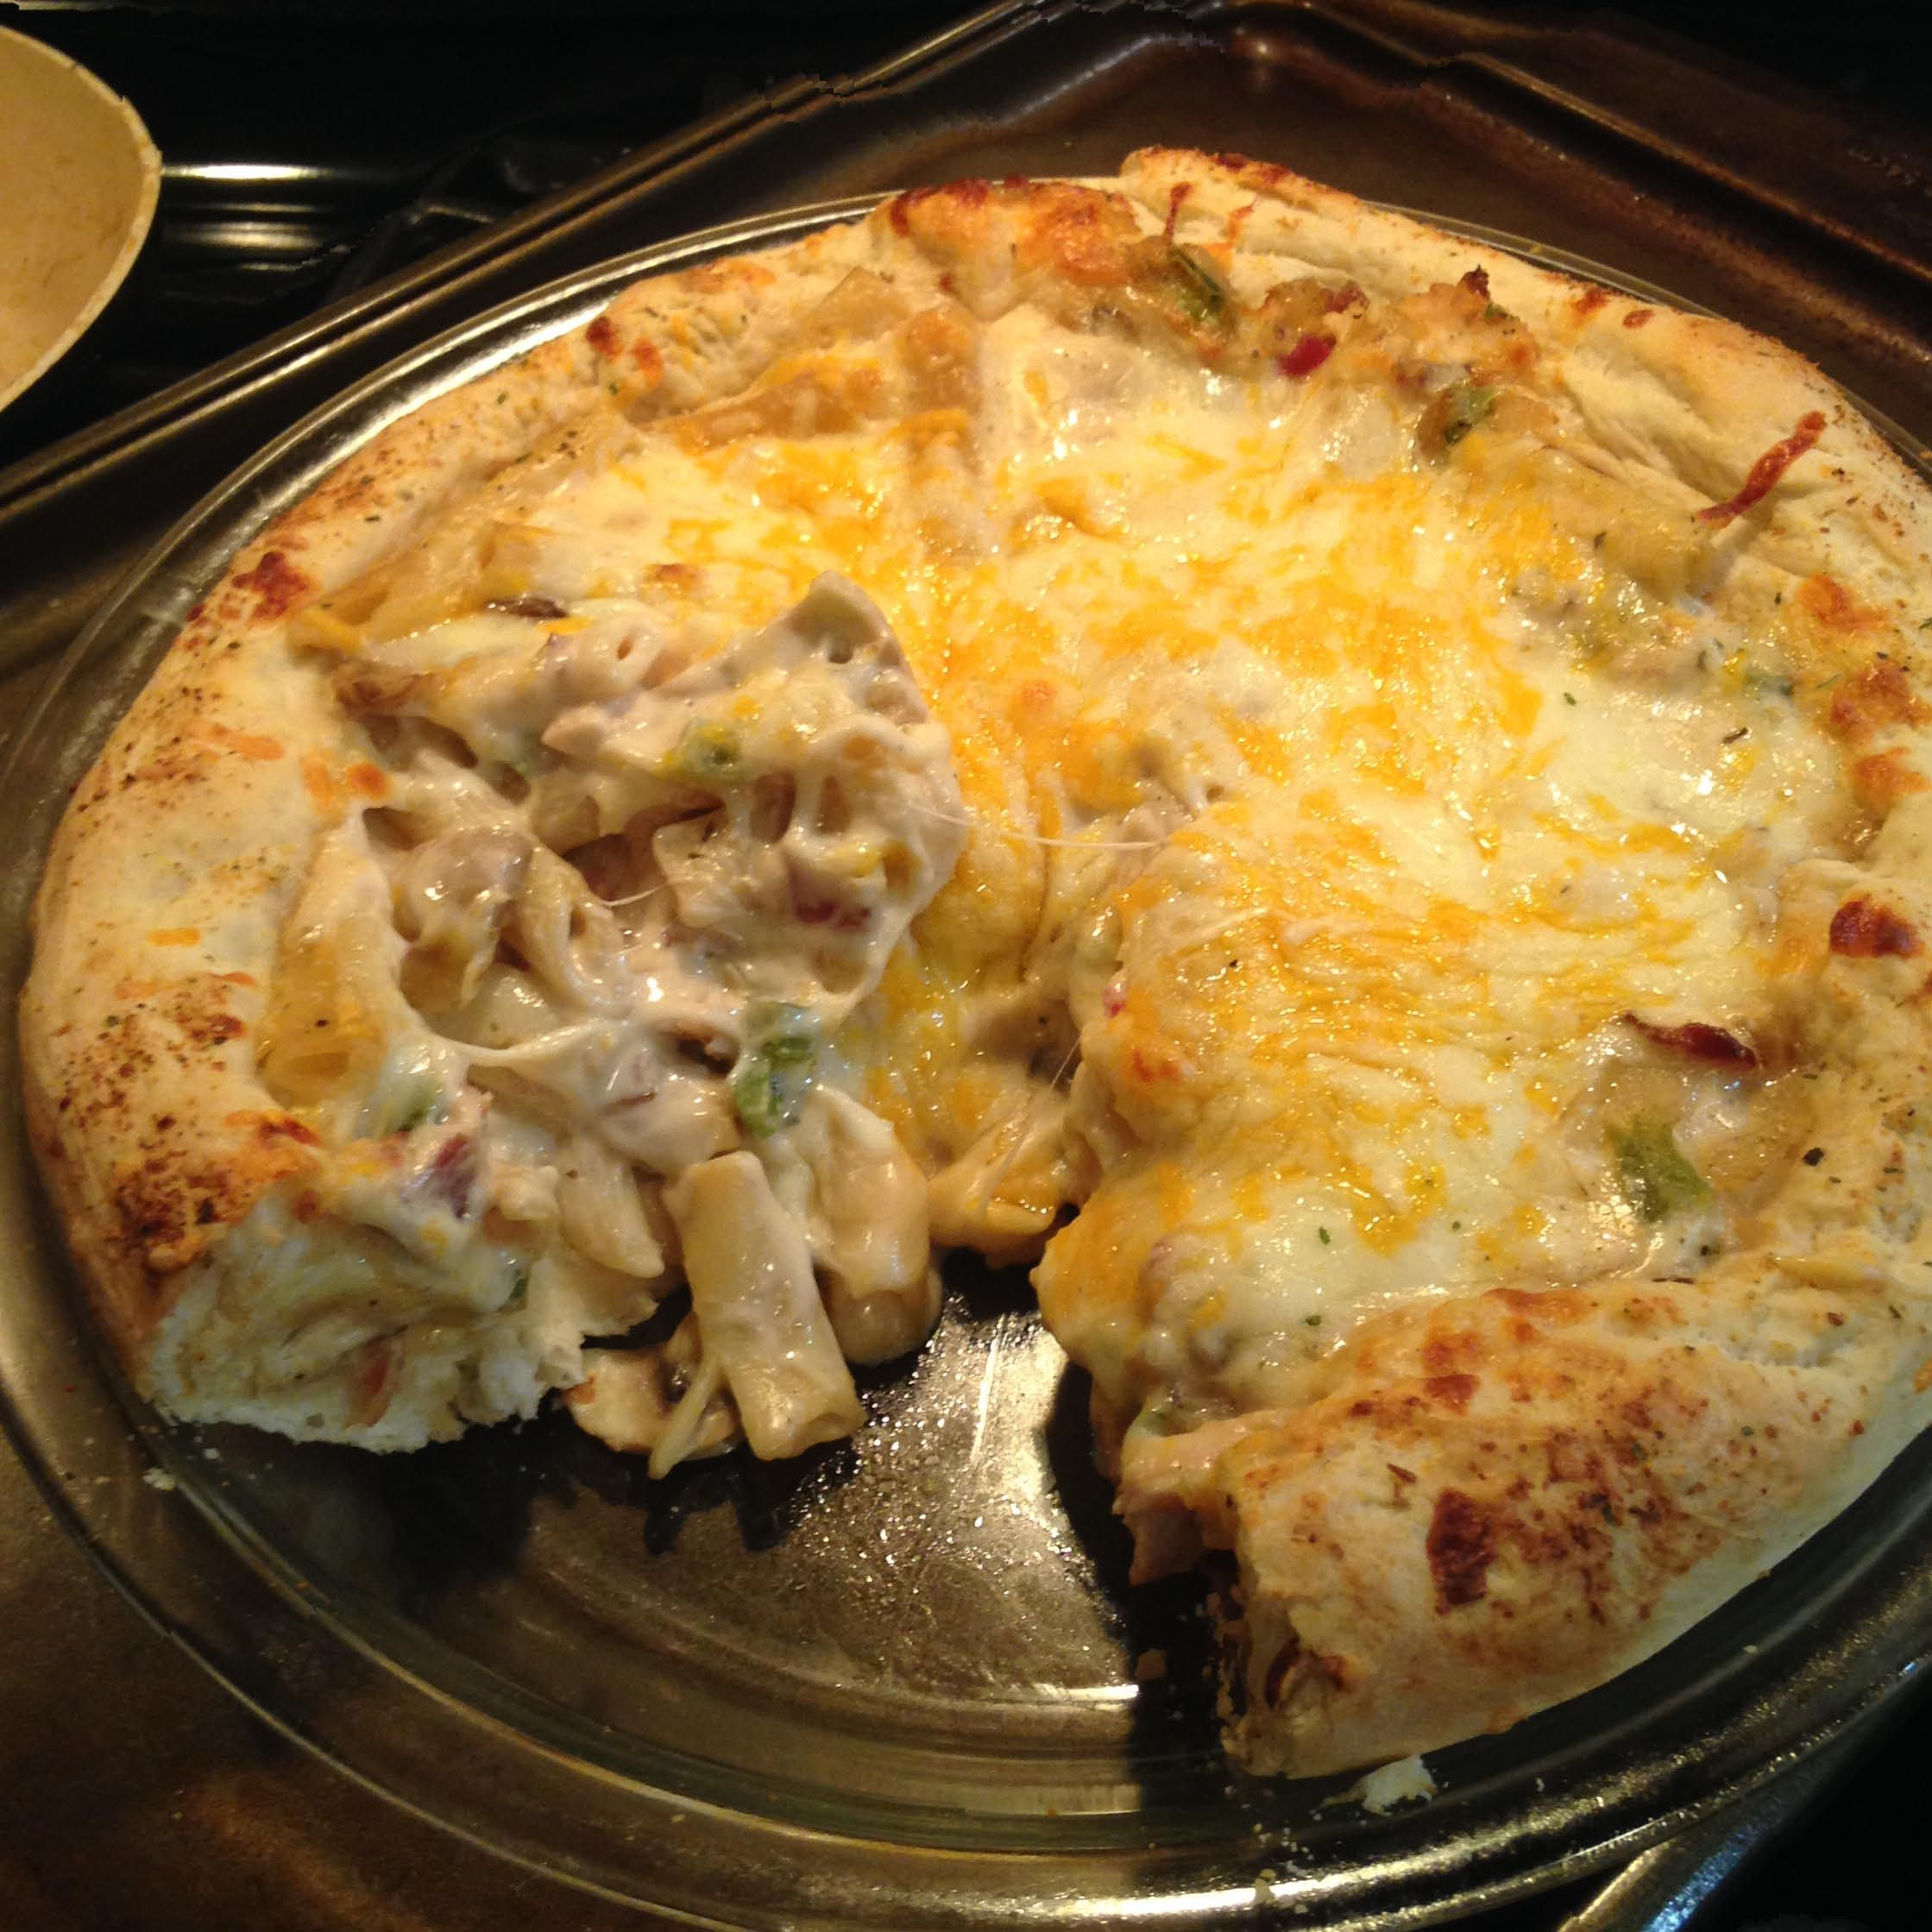 Taste A Like Dominos Bread Bowl Don\'t waste your money, make it ...